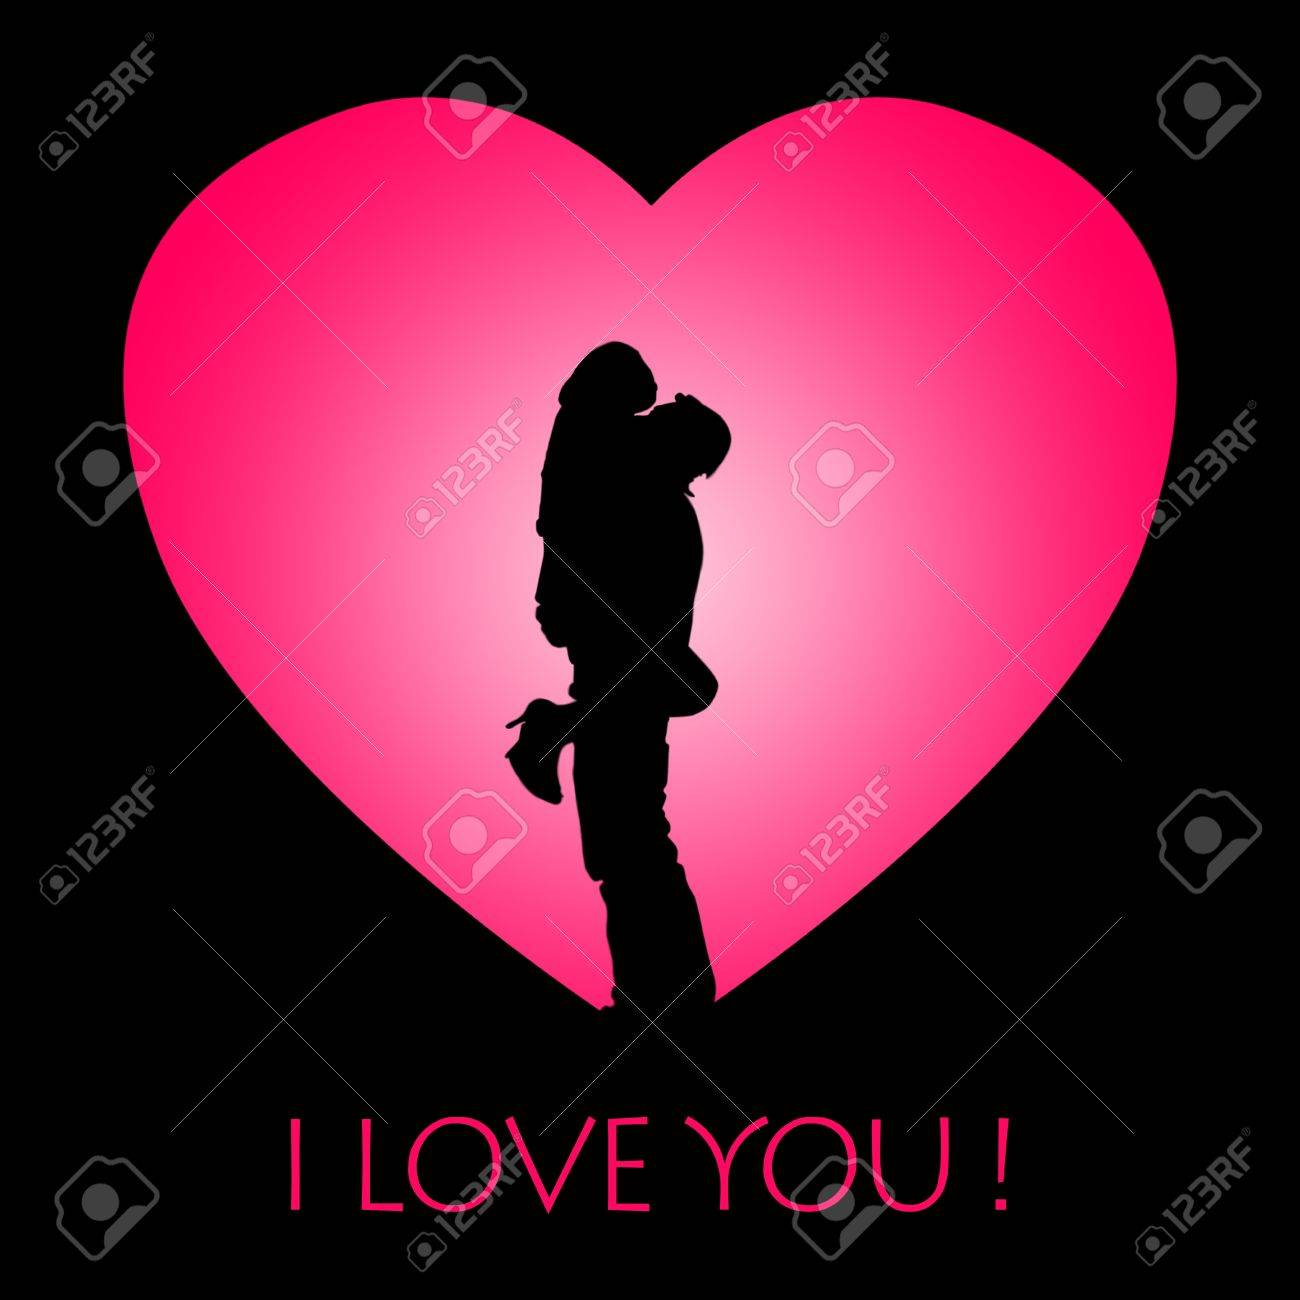 Valentine Card Design Showing Silhouette Of A Couple Hugging – Picture of a Valentine Card